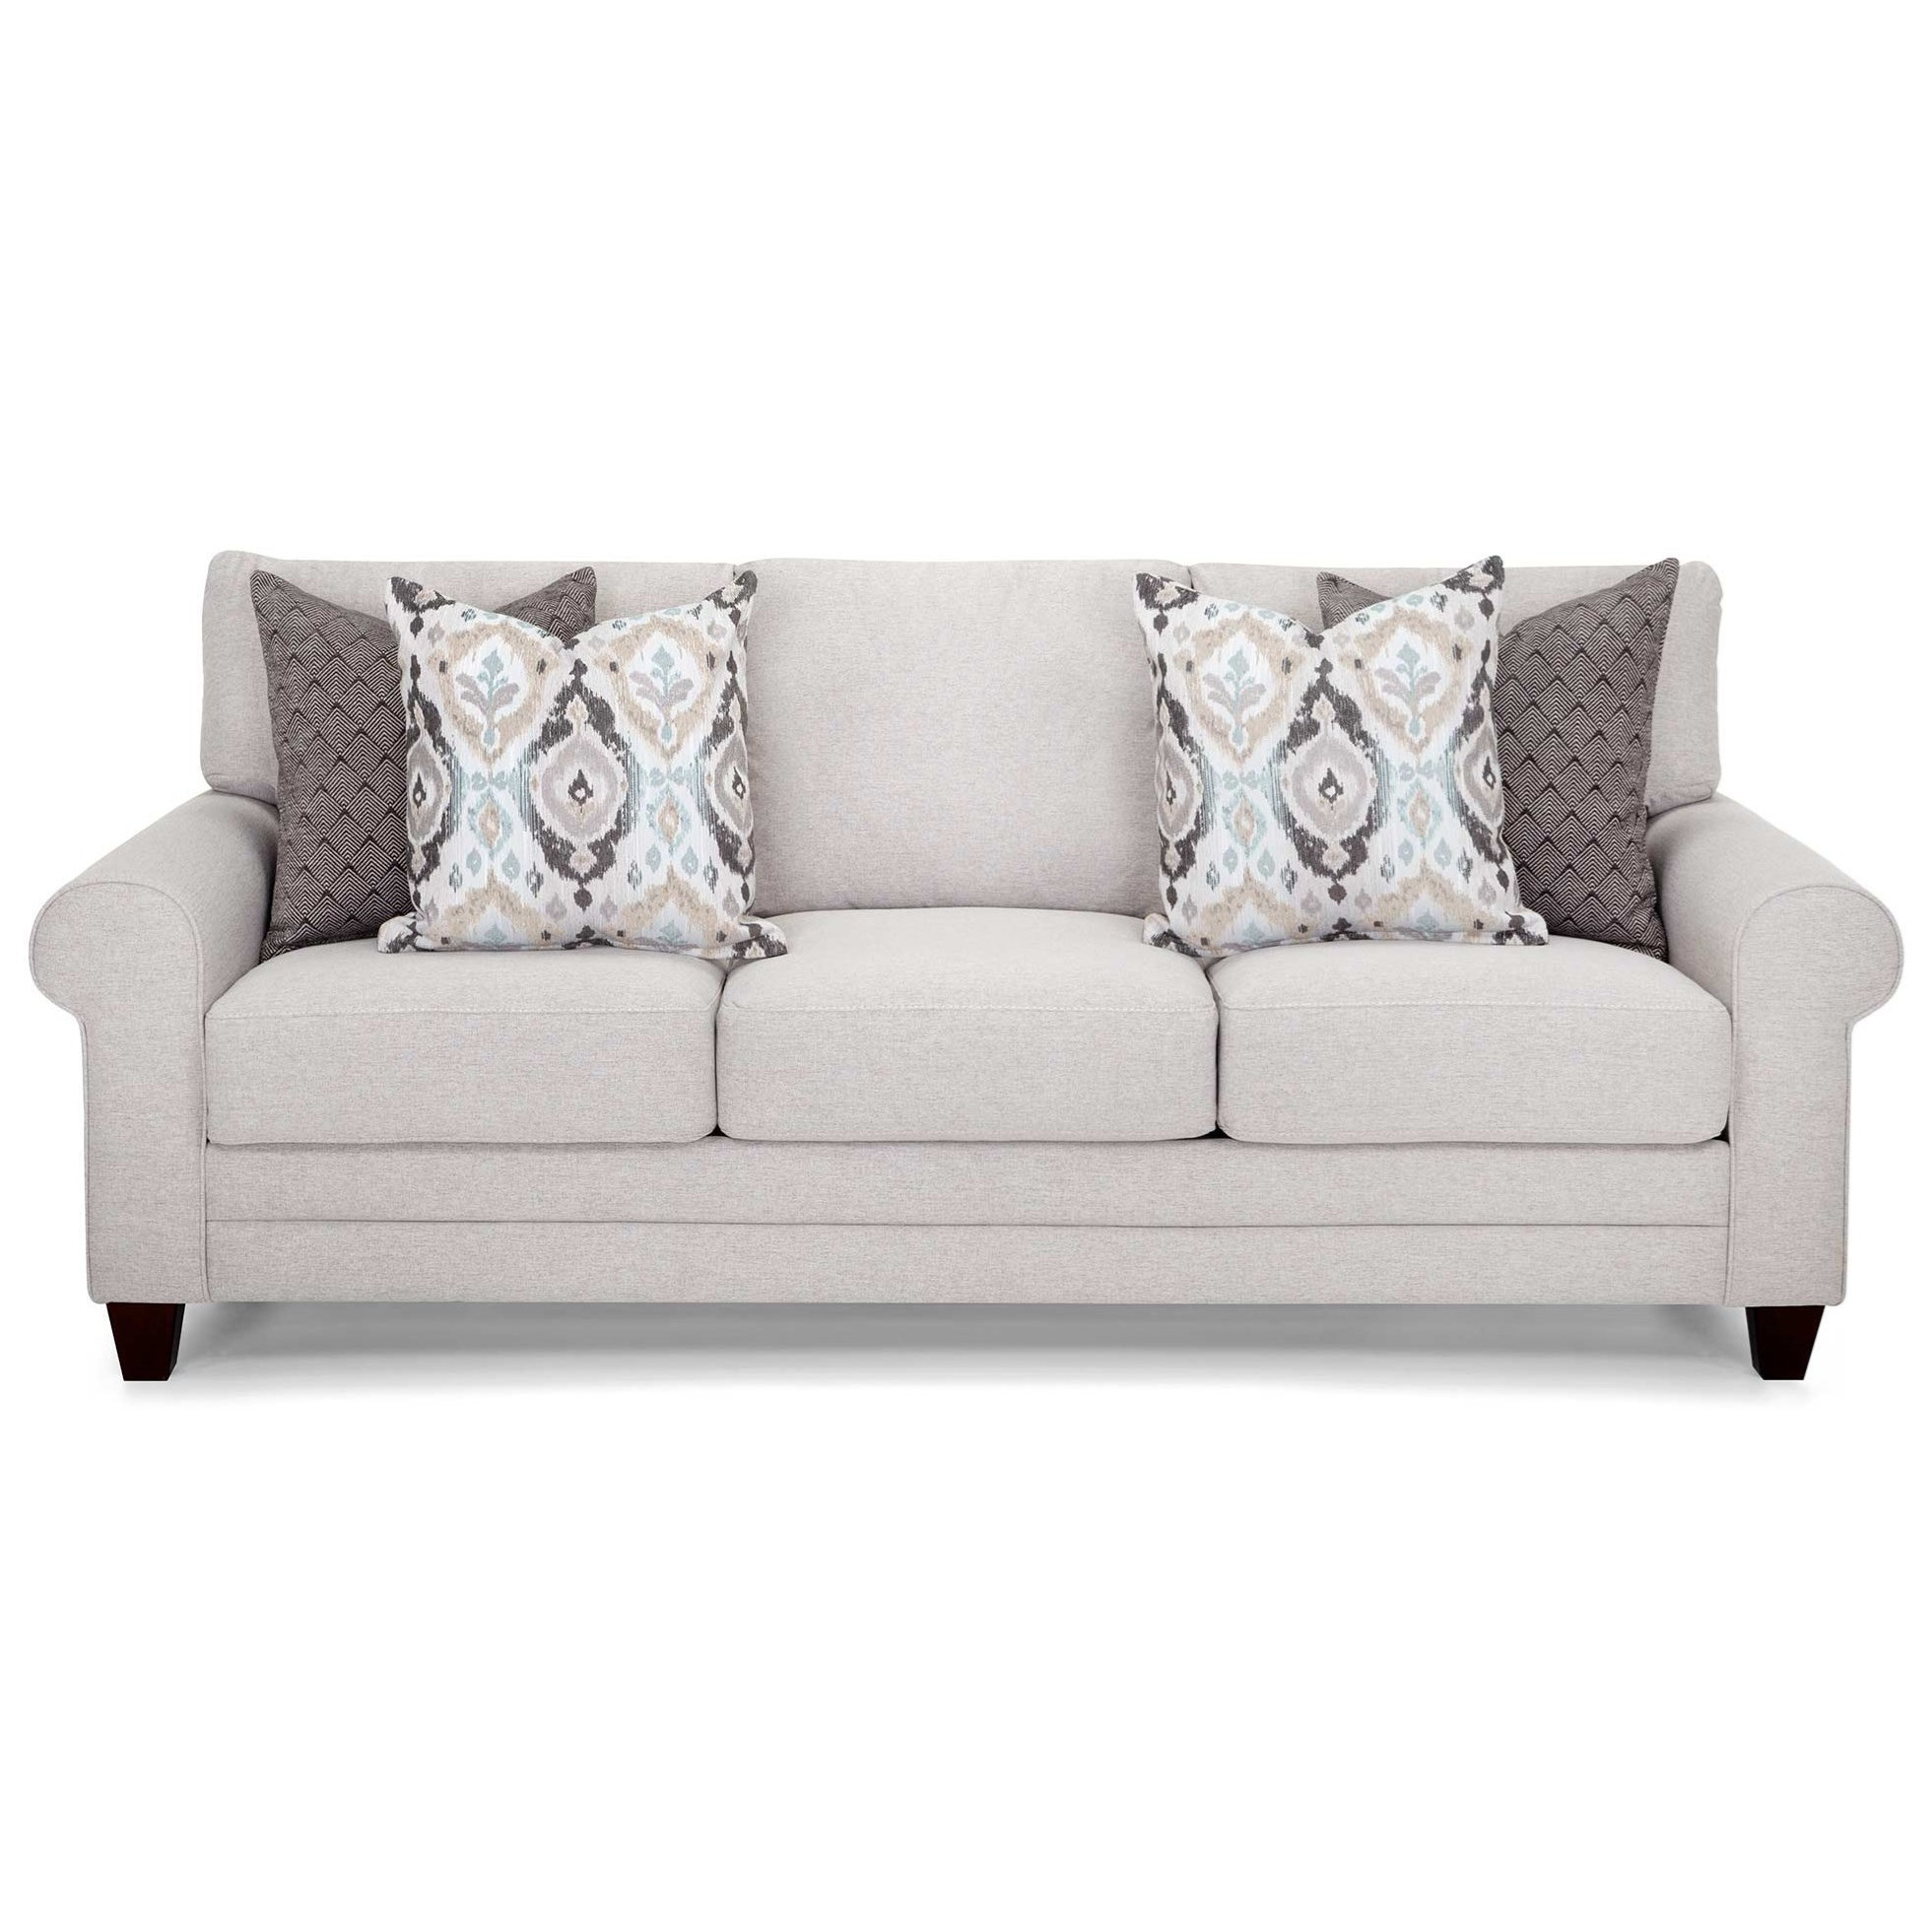 824 Sofa by Franklin at Furniture Superstore - Rochester, MN